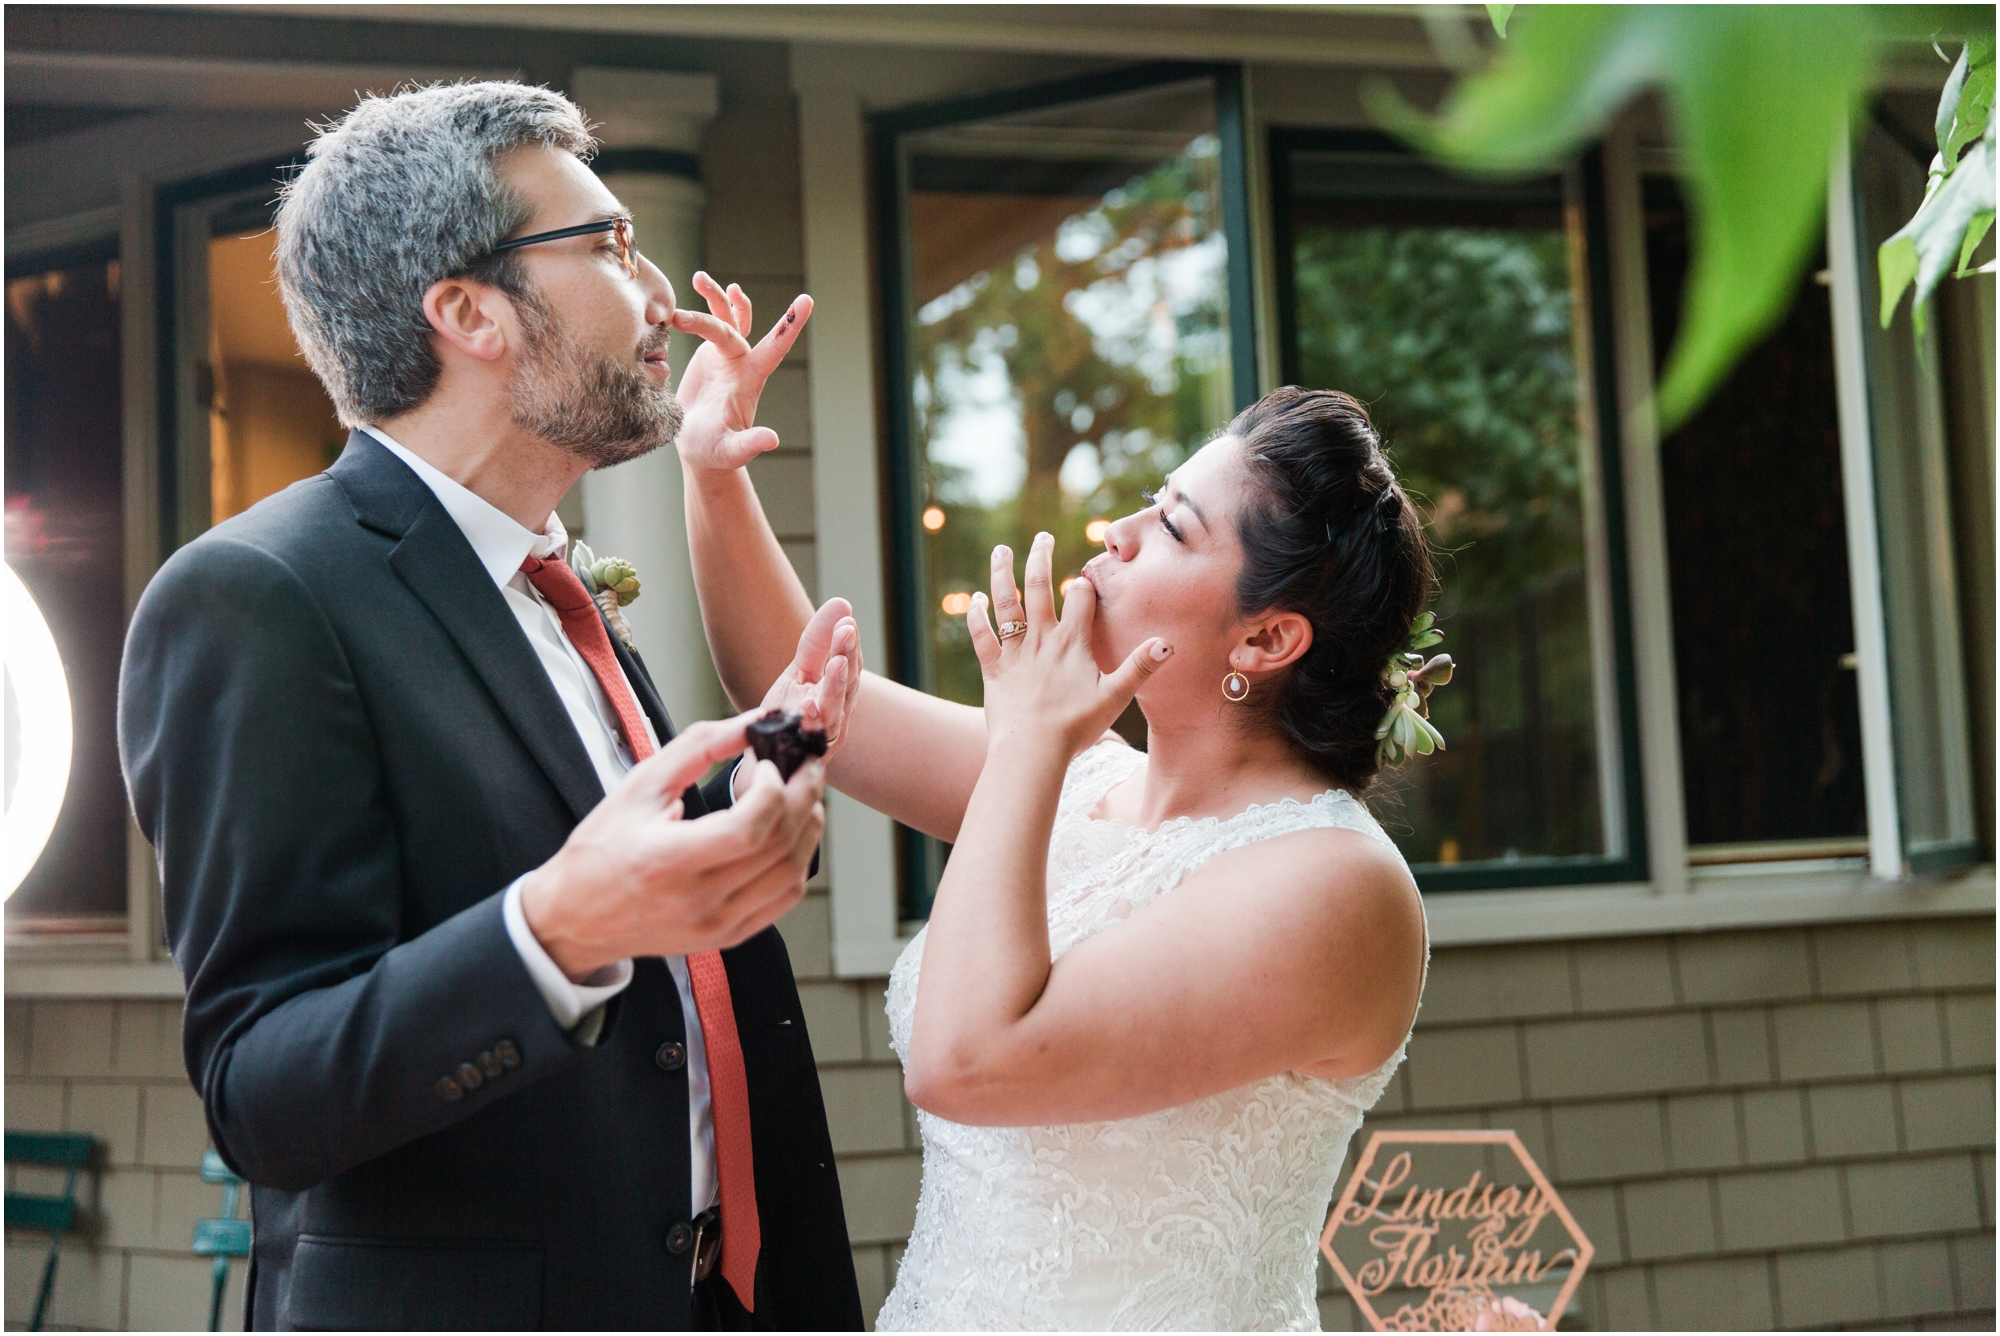 Garden wedding in Ellensburg, WA. Photos by Briana Calderon Photography based in the greater Seattle-Tacoma Area._1365.jpg